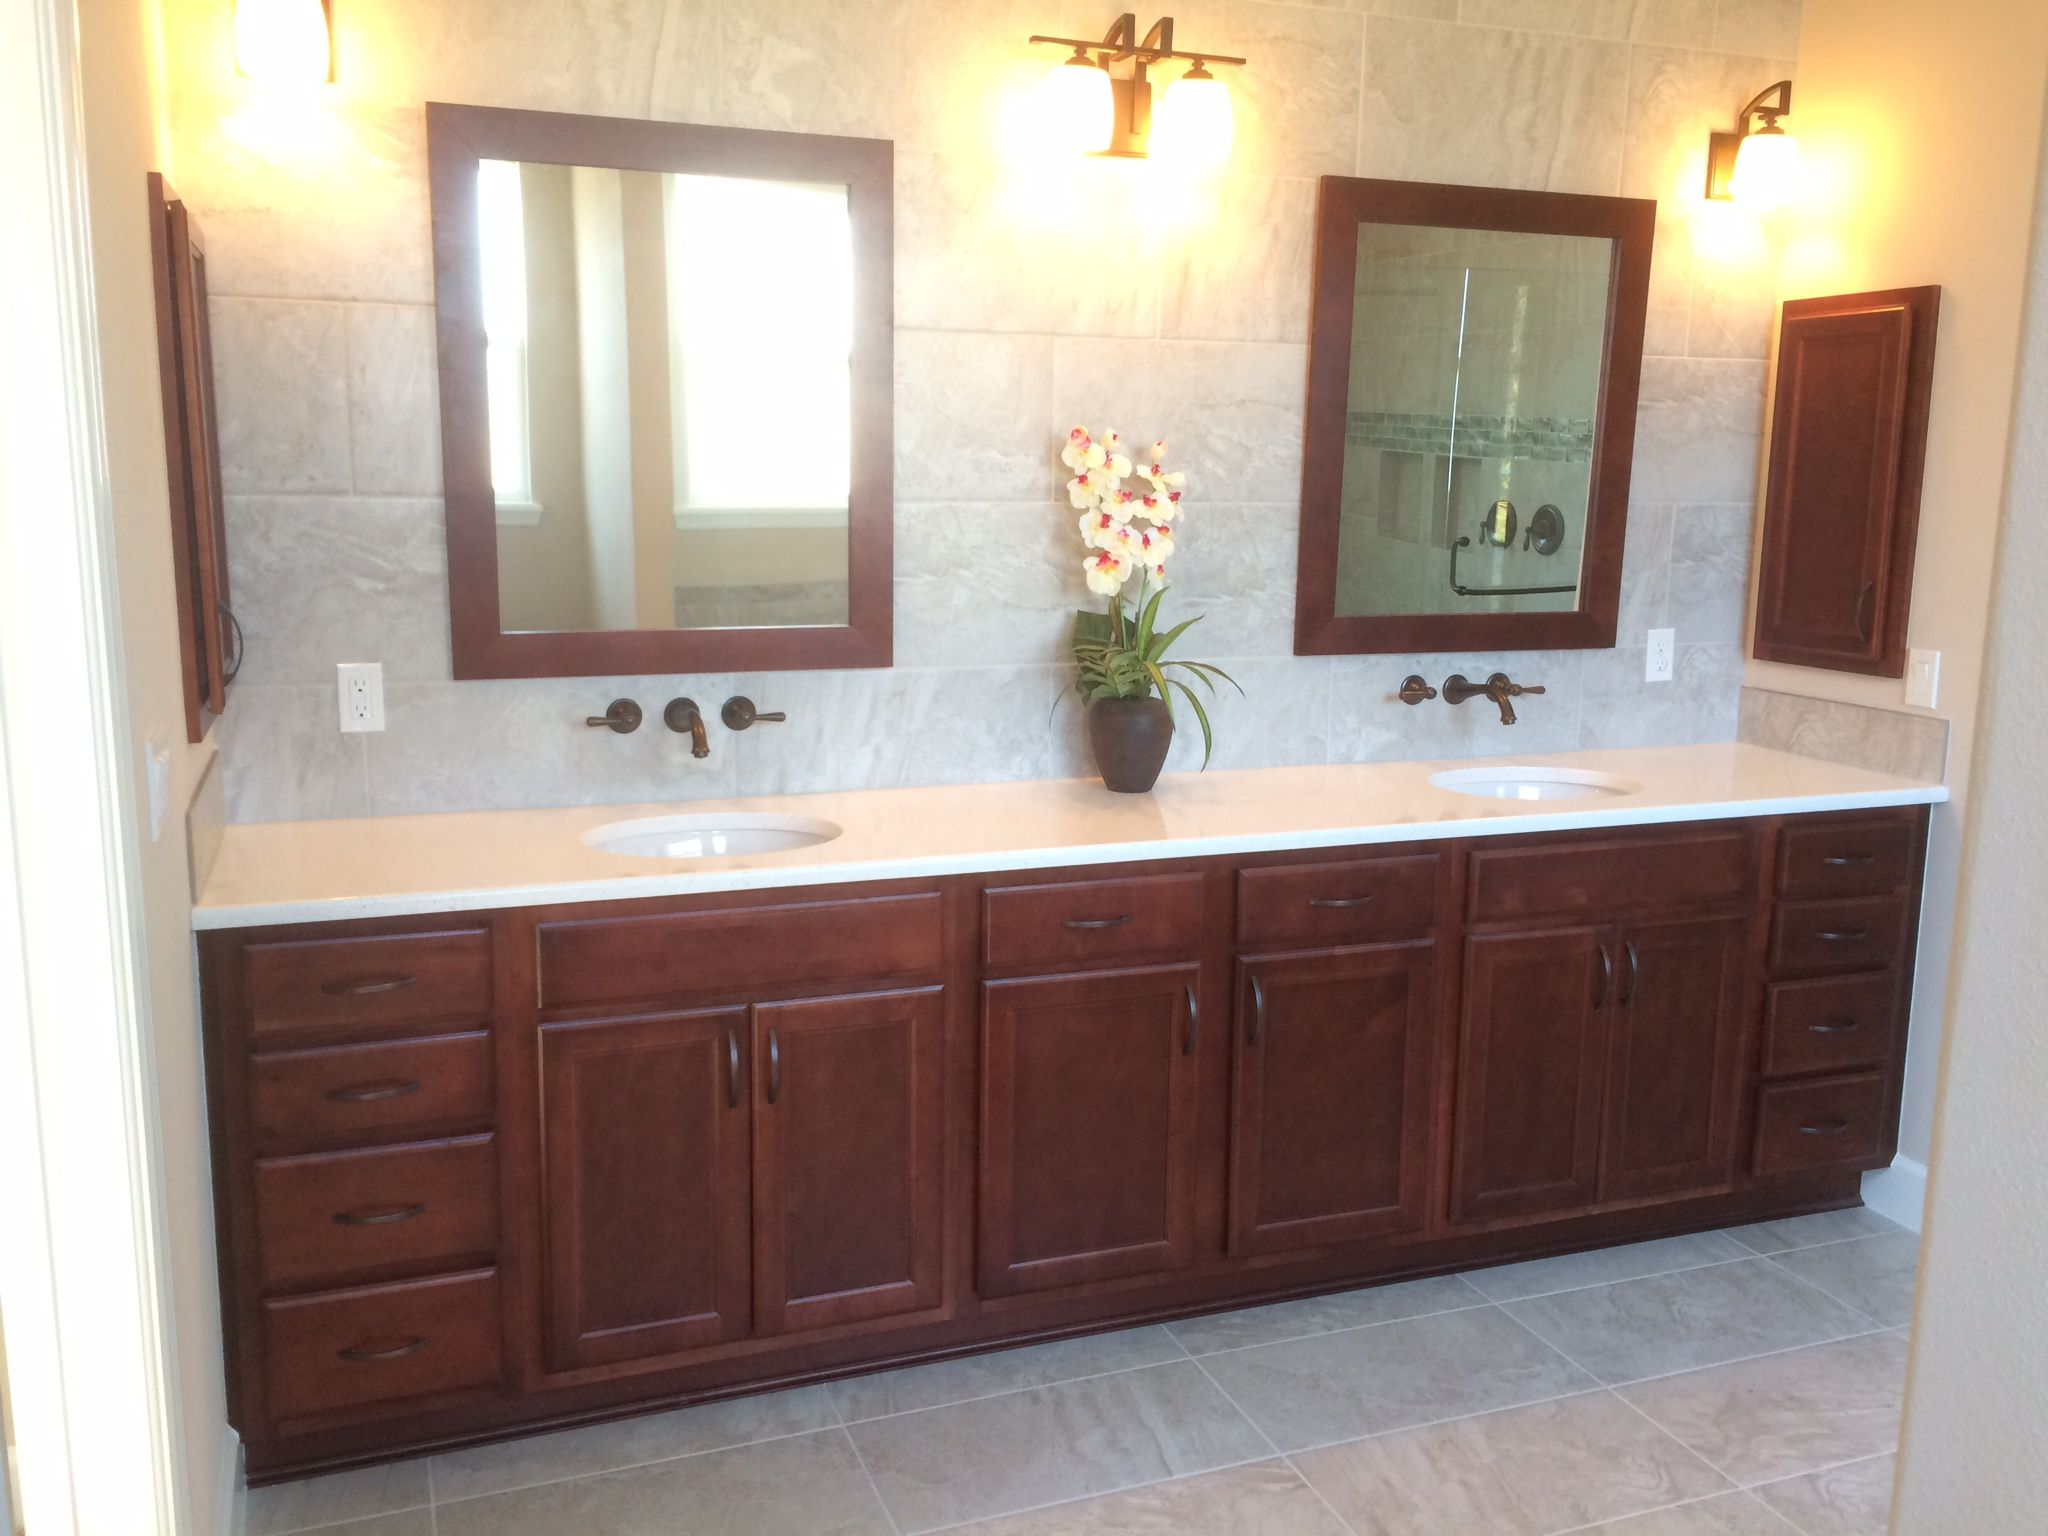 From Spec Home Delete Medicine Cabinets Use Larger Mirrors Lower Sconces 120 Vanity 30x36 Mirrors Vanity Bathroom Vanity Large Mirror [ 1536 x 2048 Pixel ]